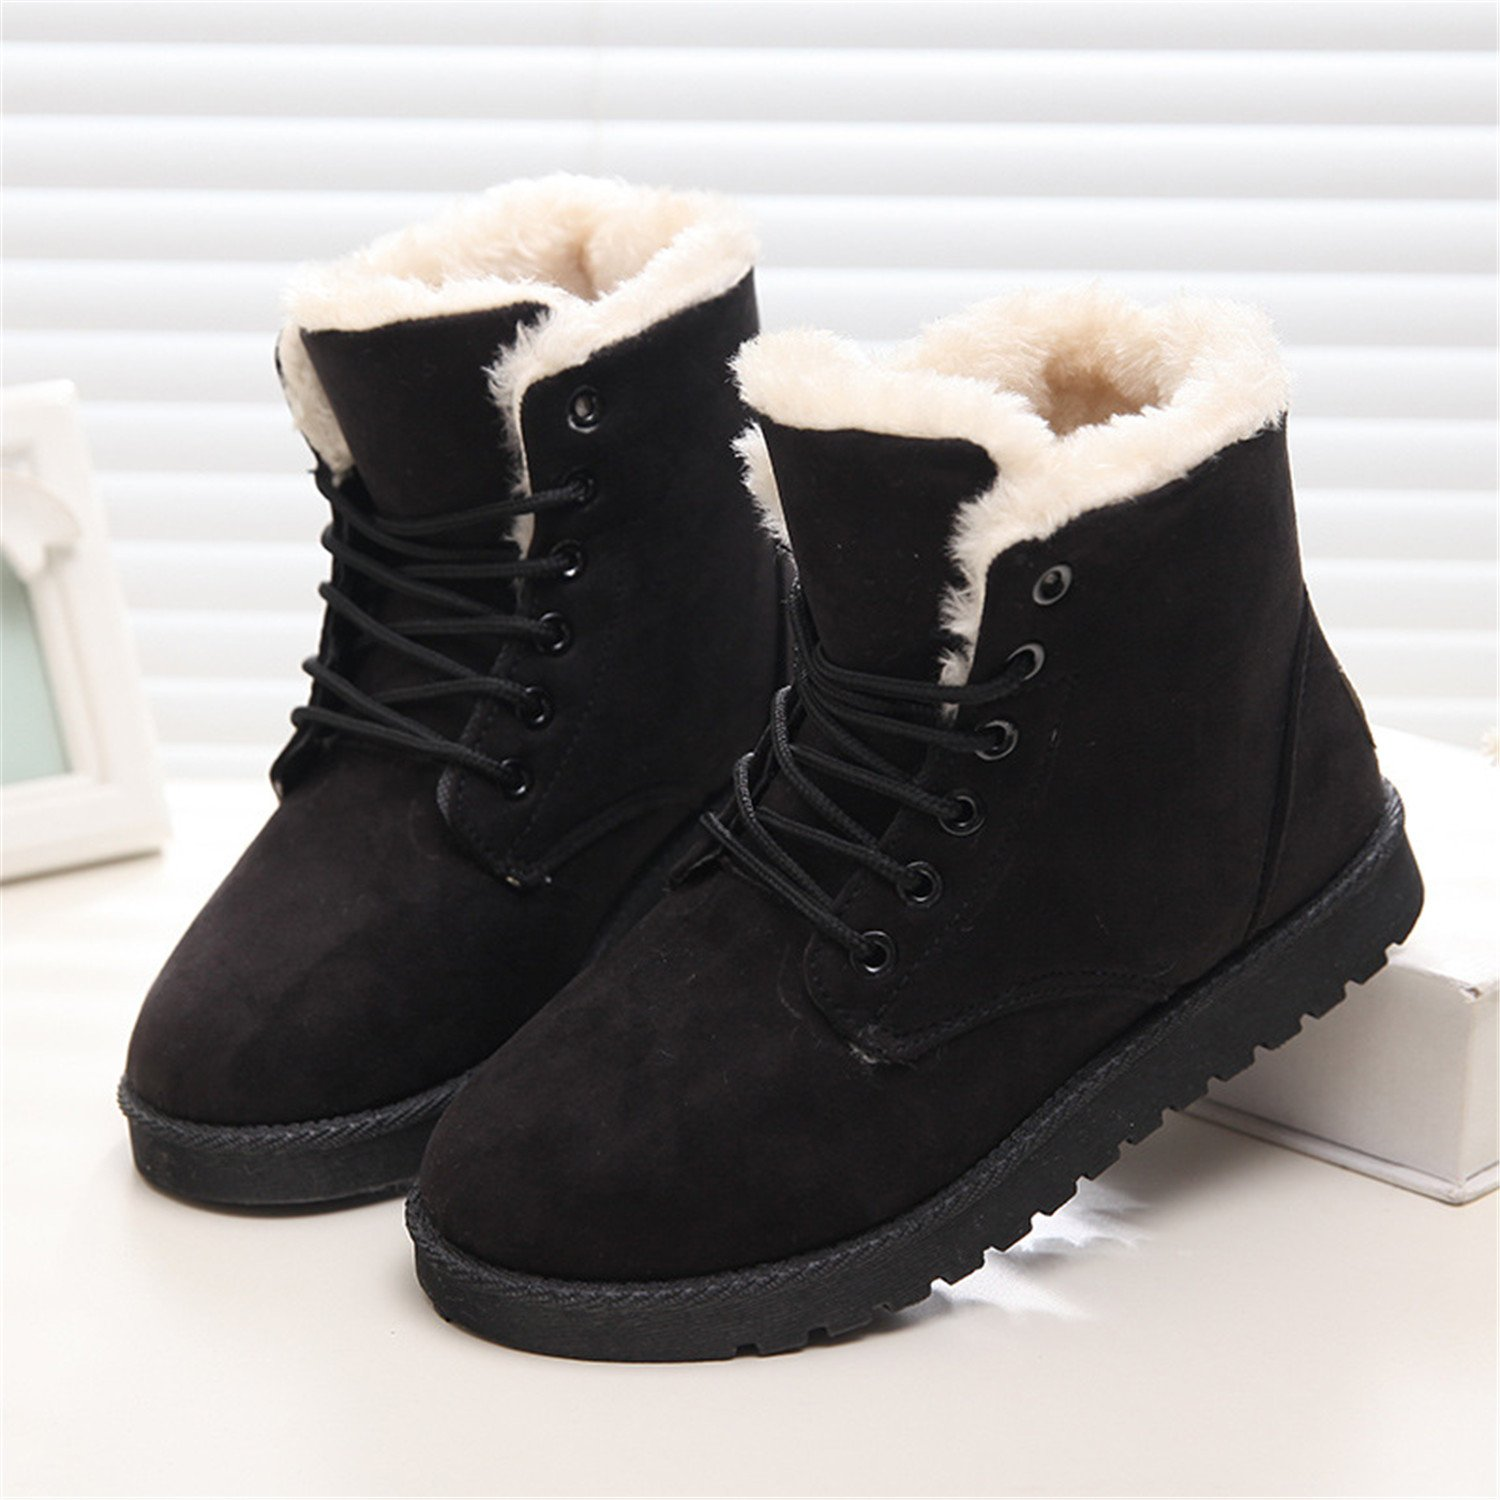 Dormery Women Winter Winter Women Boots Suede Snow Ankle Boots Female Warm Winter Shoes Woman Round Toe Botas Mujer B078R3PYZ7 Snow Boots 25e808